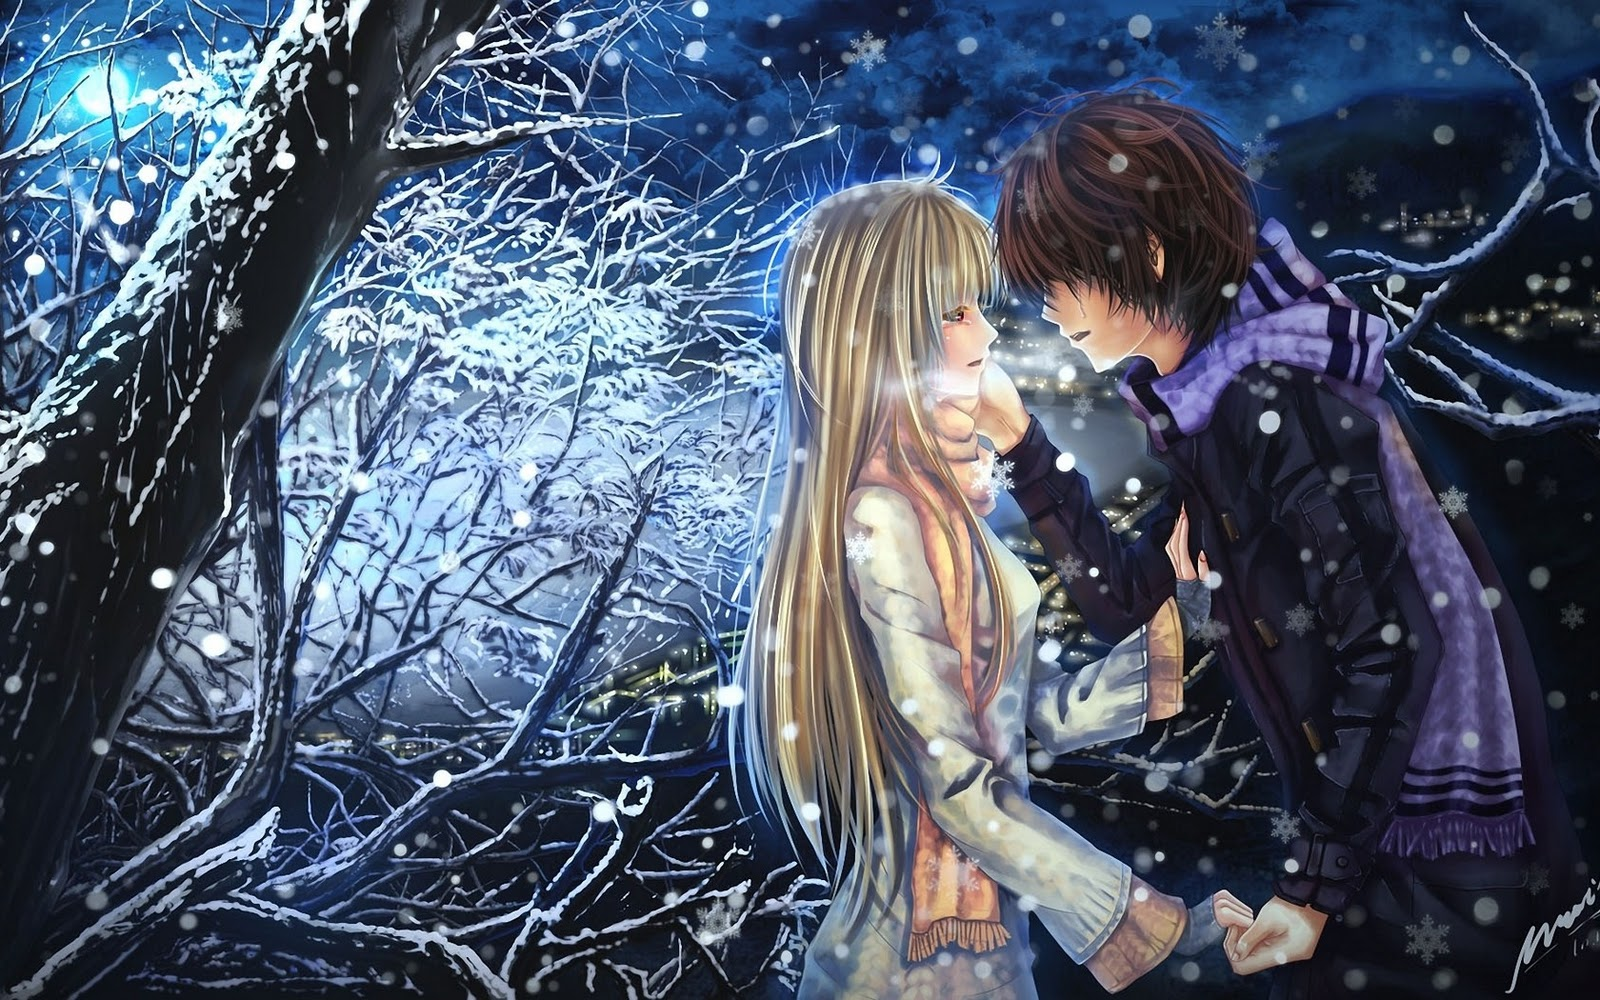 Love couple Wallpaper Animated : A2Z Wallpapers: Anime couples In Love Wallpapers